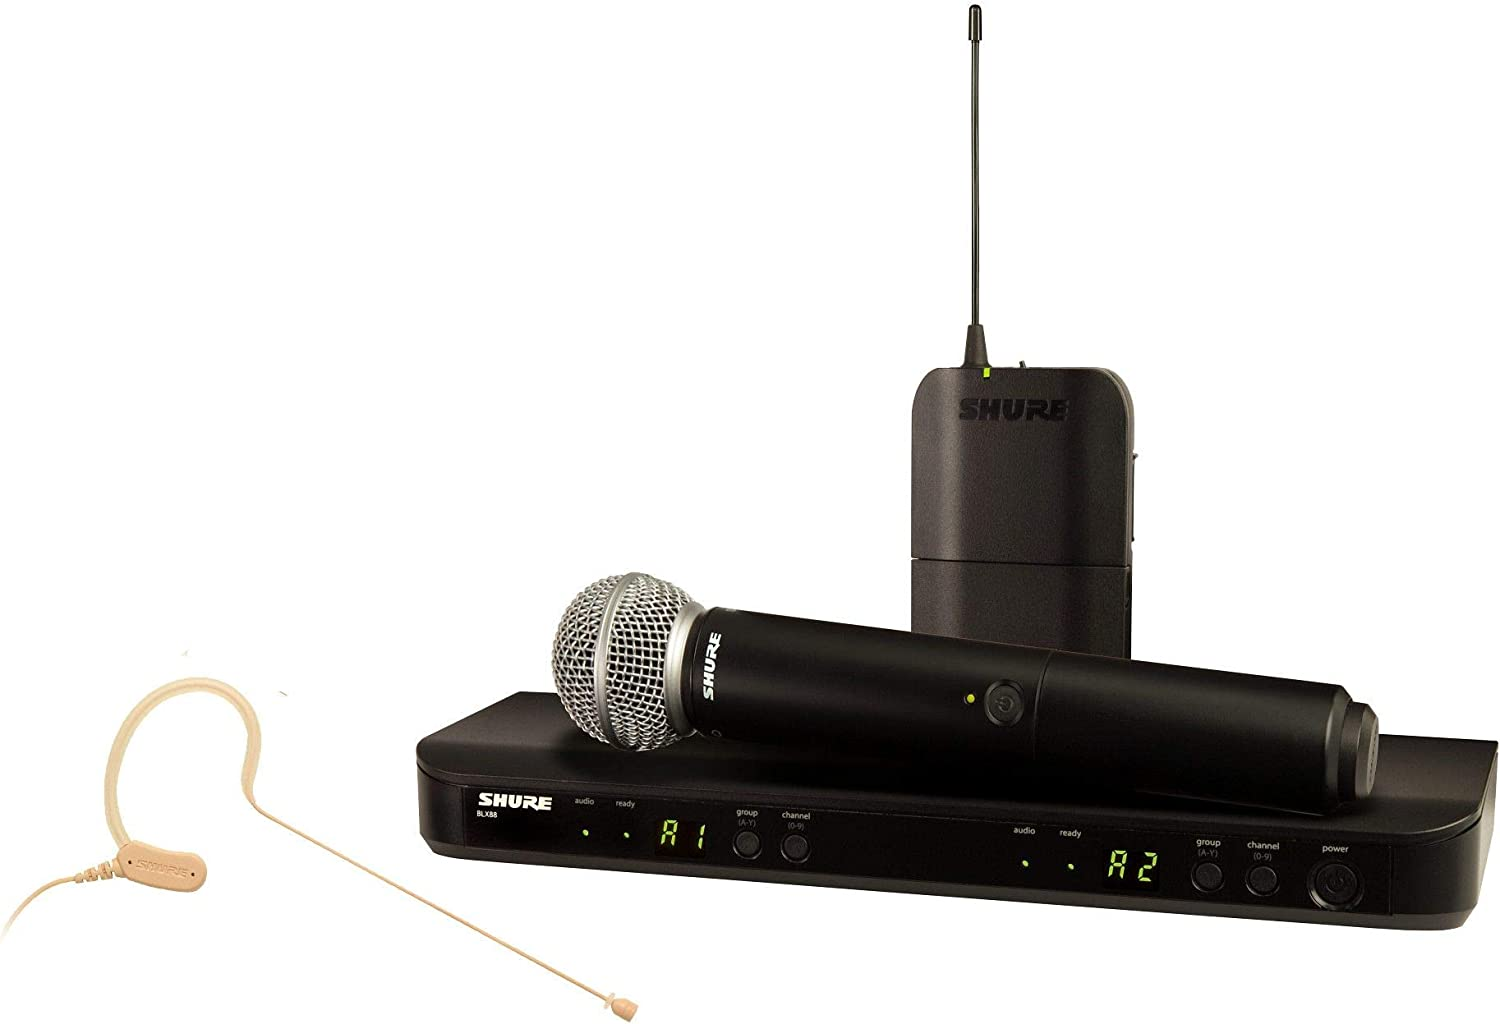 Shure Austin Mall BLX1288 MX153 Wireless Combo Recommended Dual System with Channe BLX88